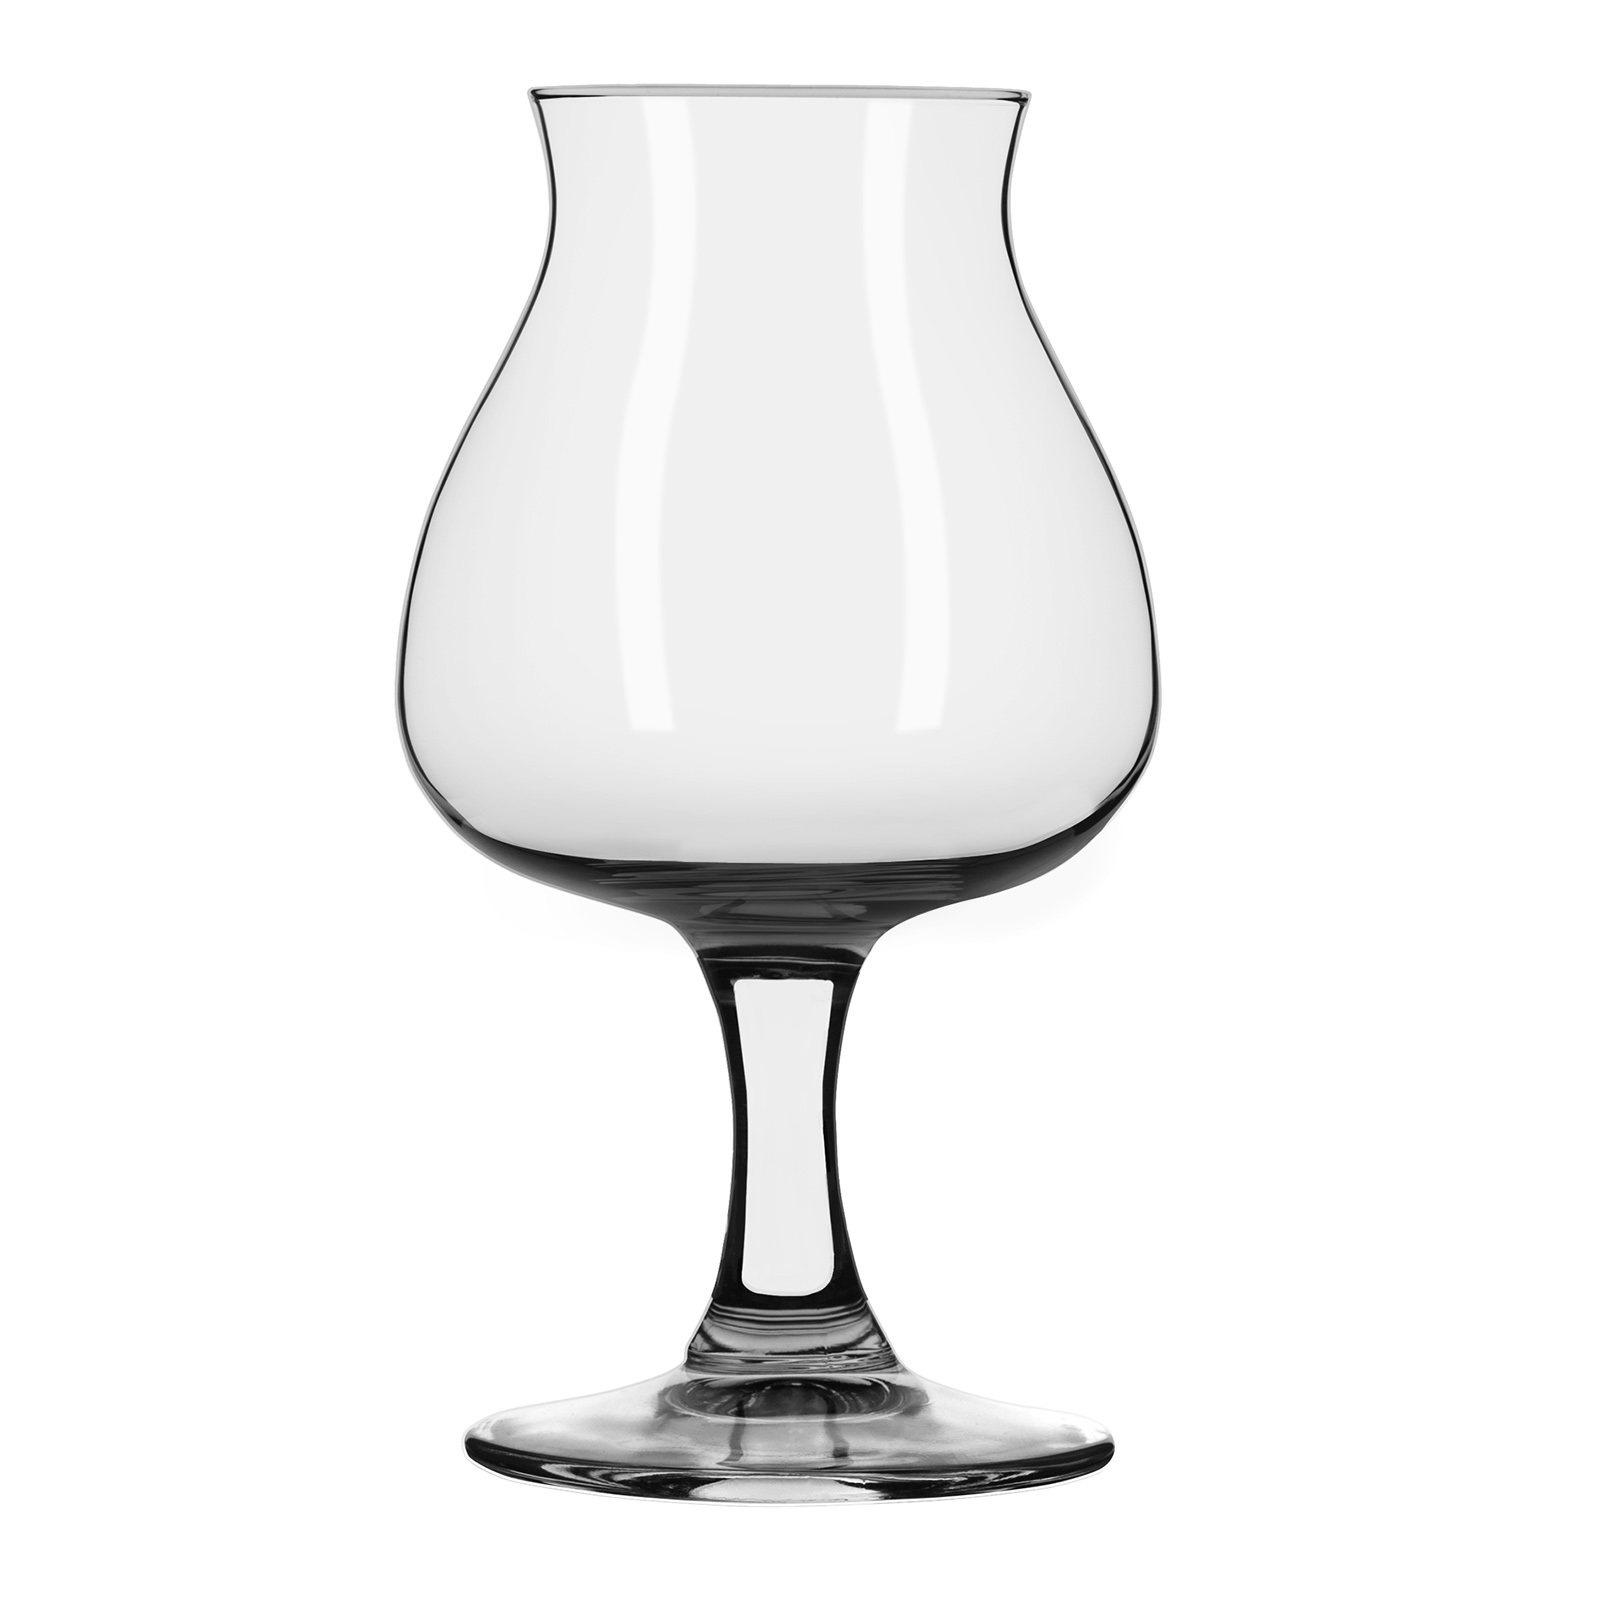 Libbey Glass 440102 glass, beer